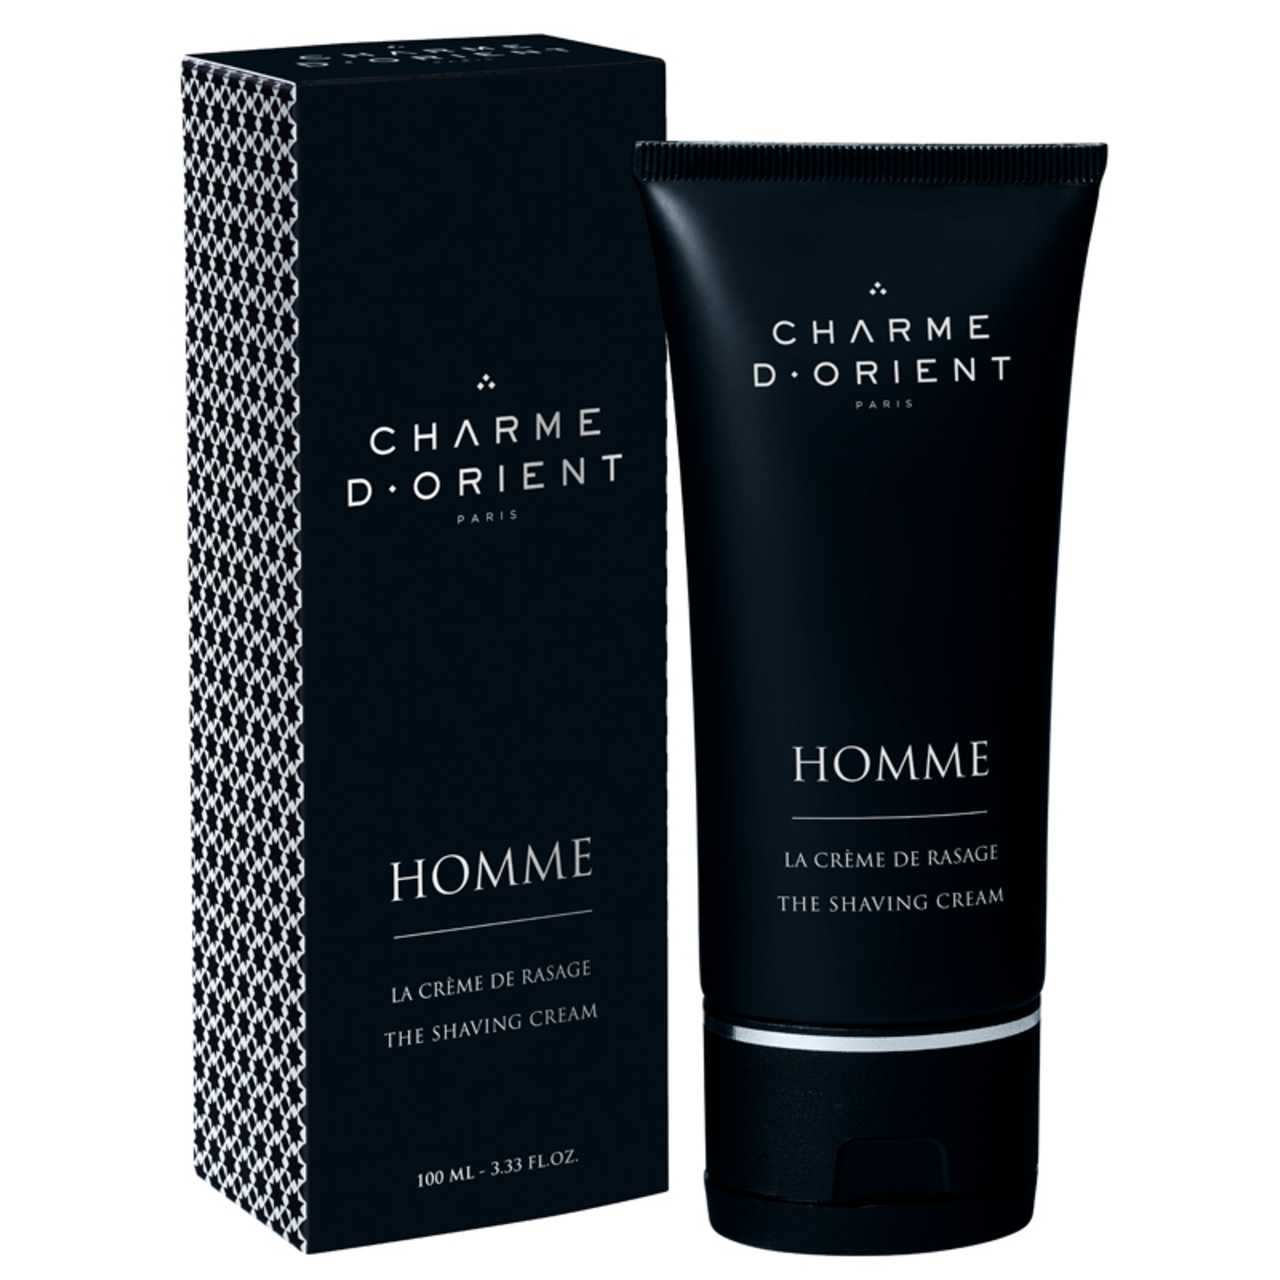 CHARME D'ORIENT HOMME Men Shaving Cream